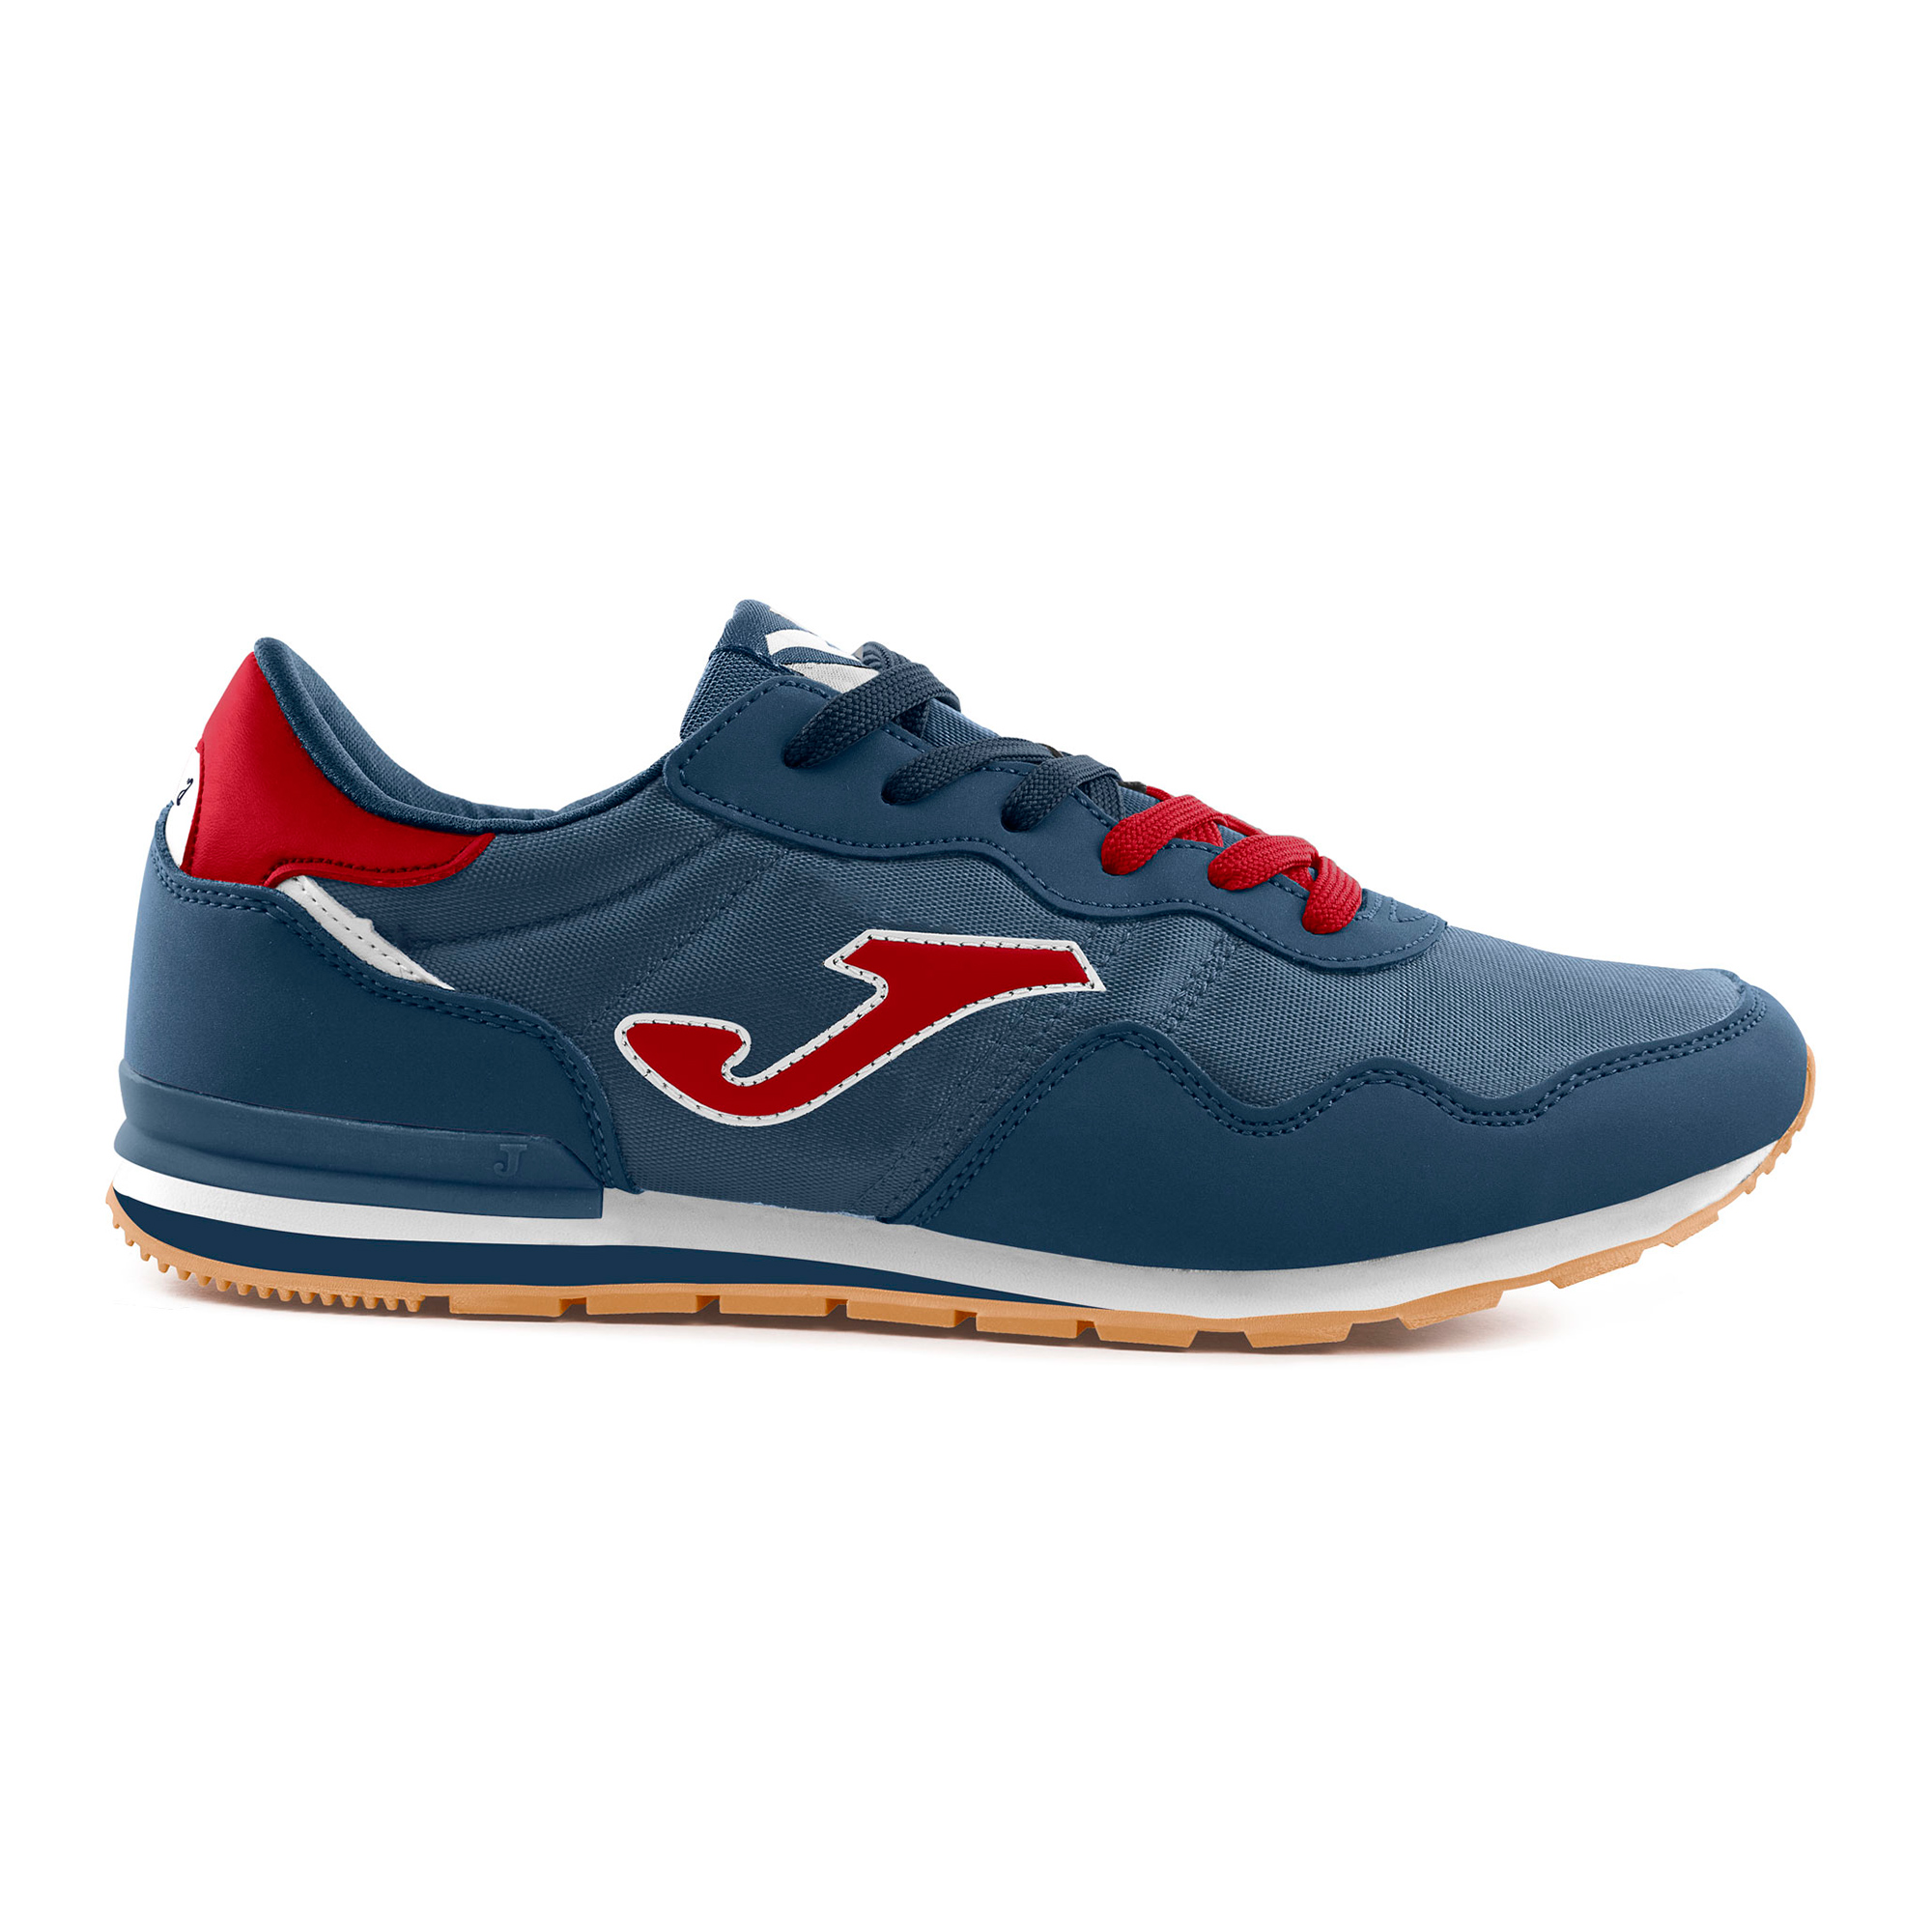 Comprar Joma  Shoes C.357 Men 914 marine